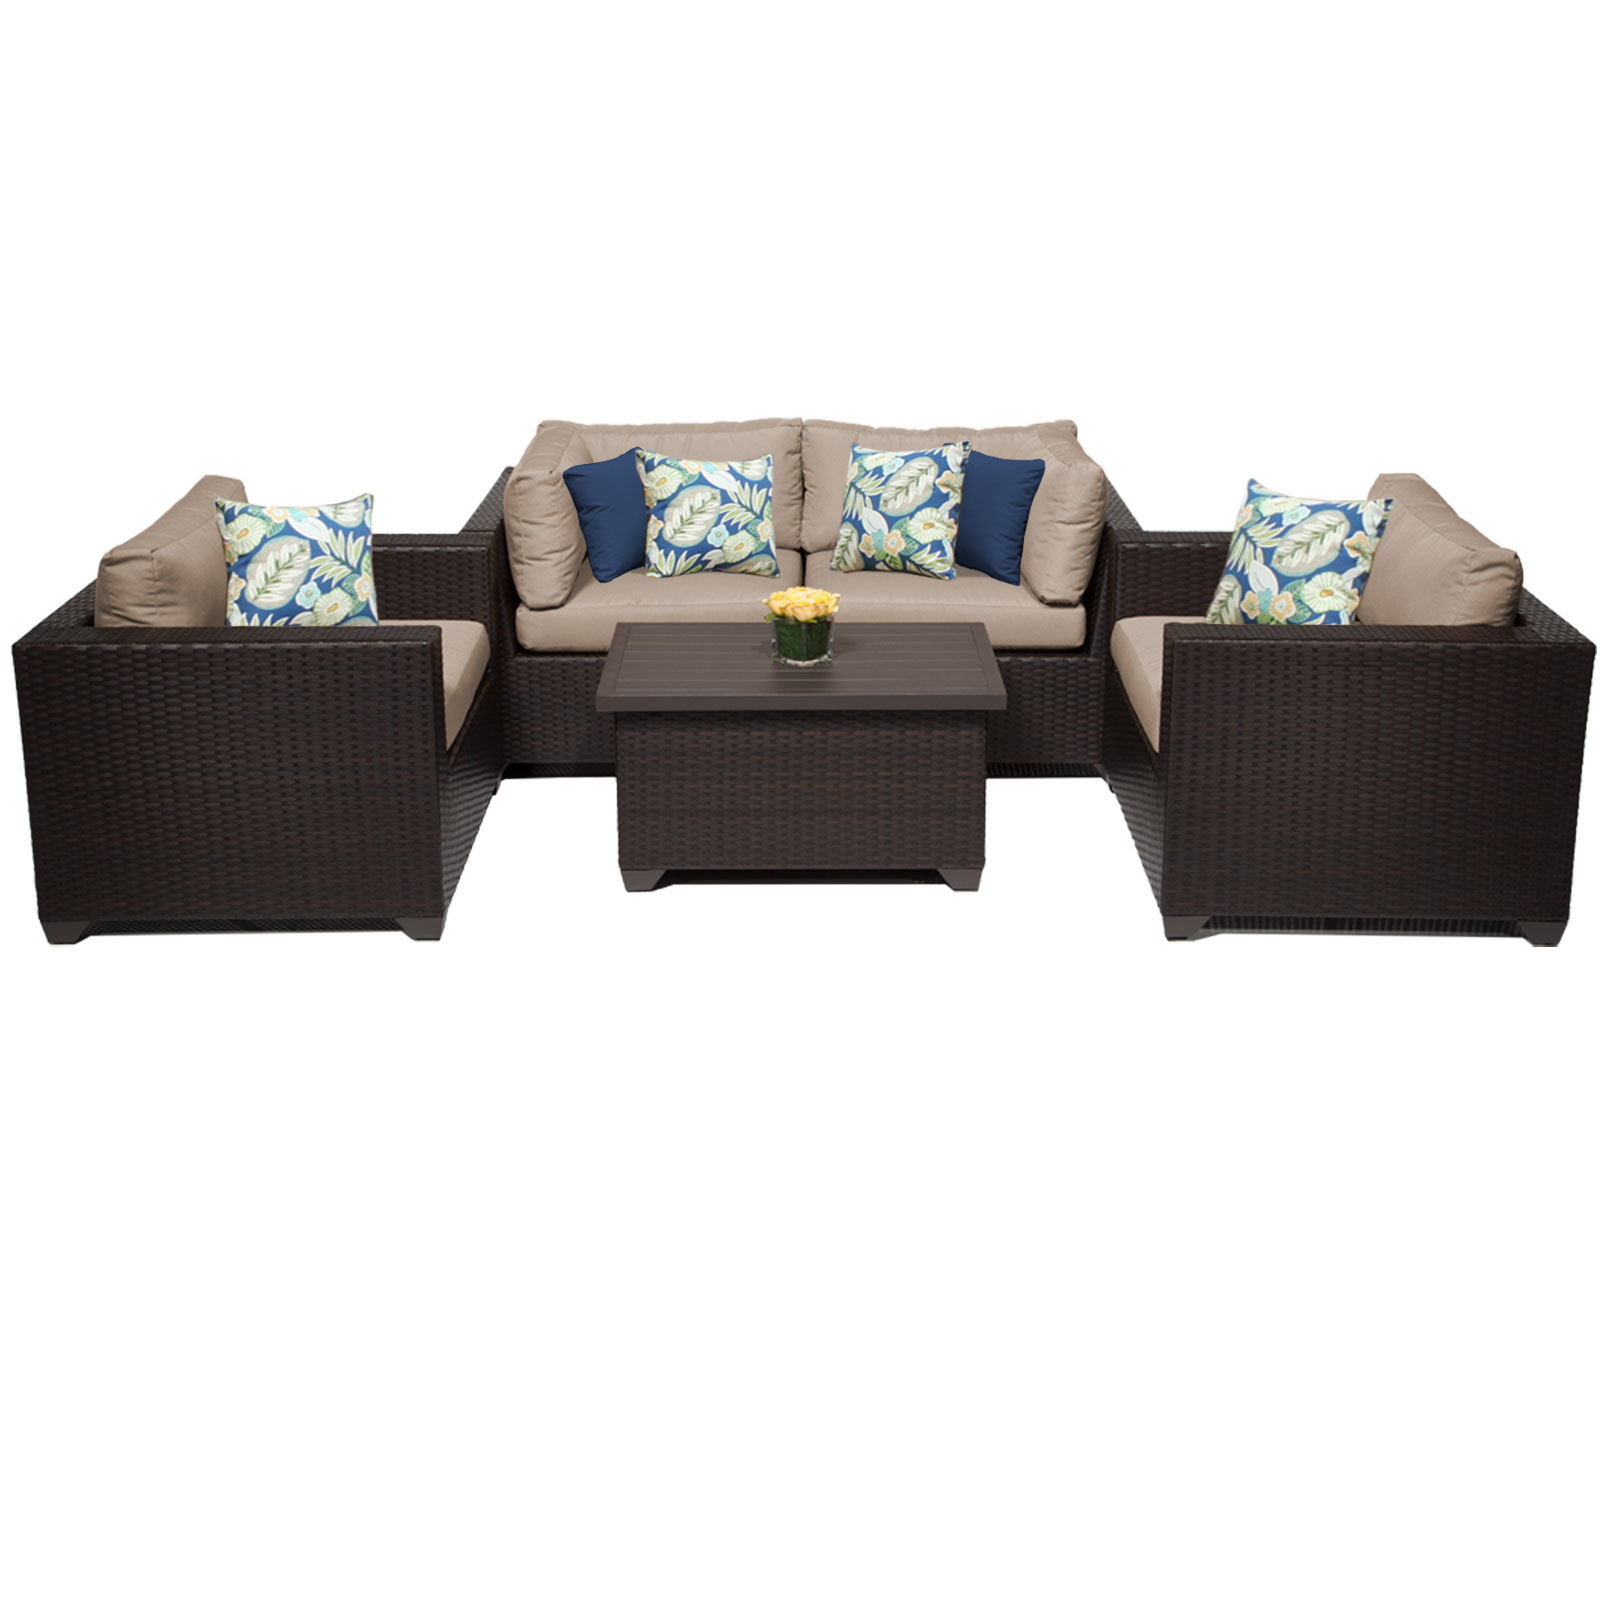 Premier 5 Piece Outdoor Wicker Patio Furniture Set 05b by TK Classics